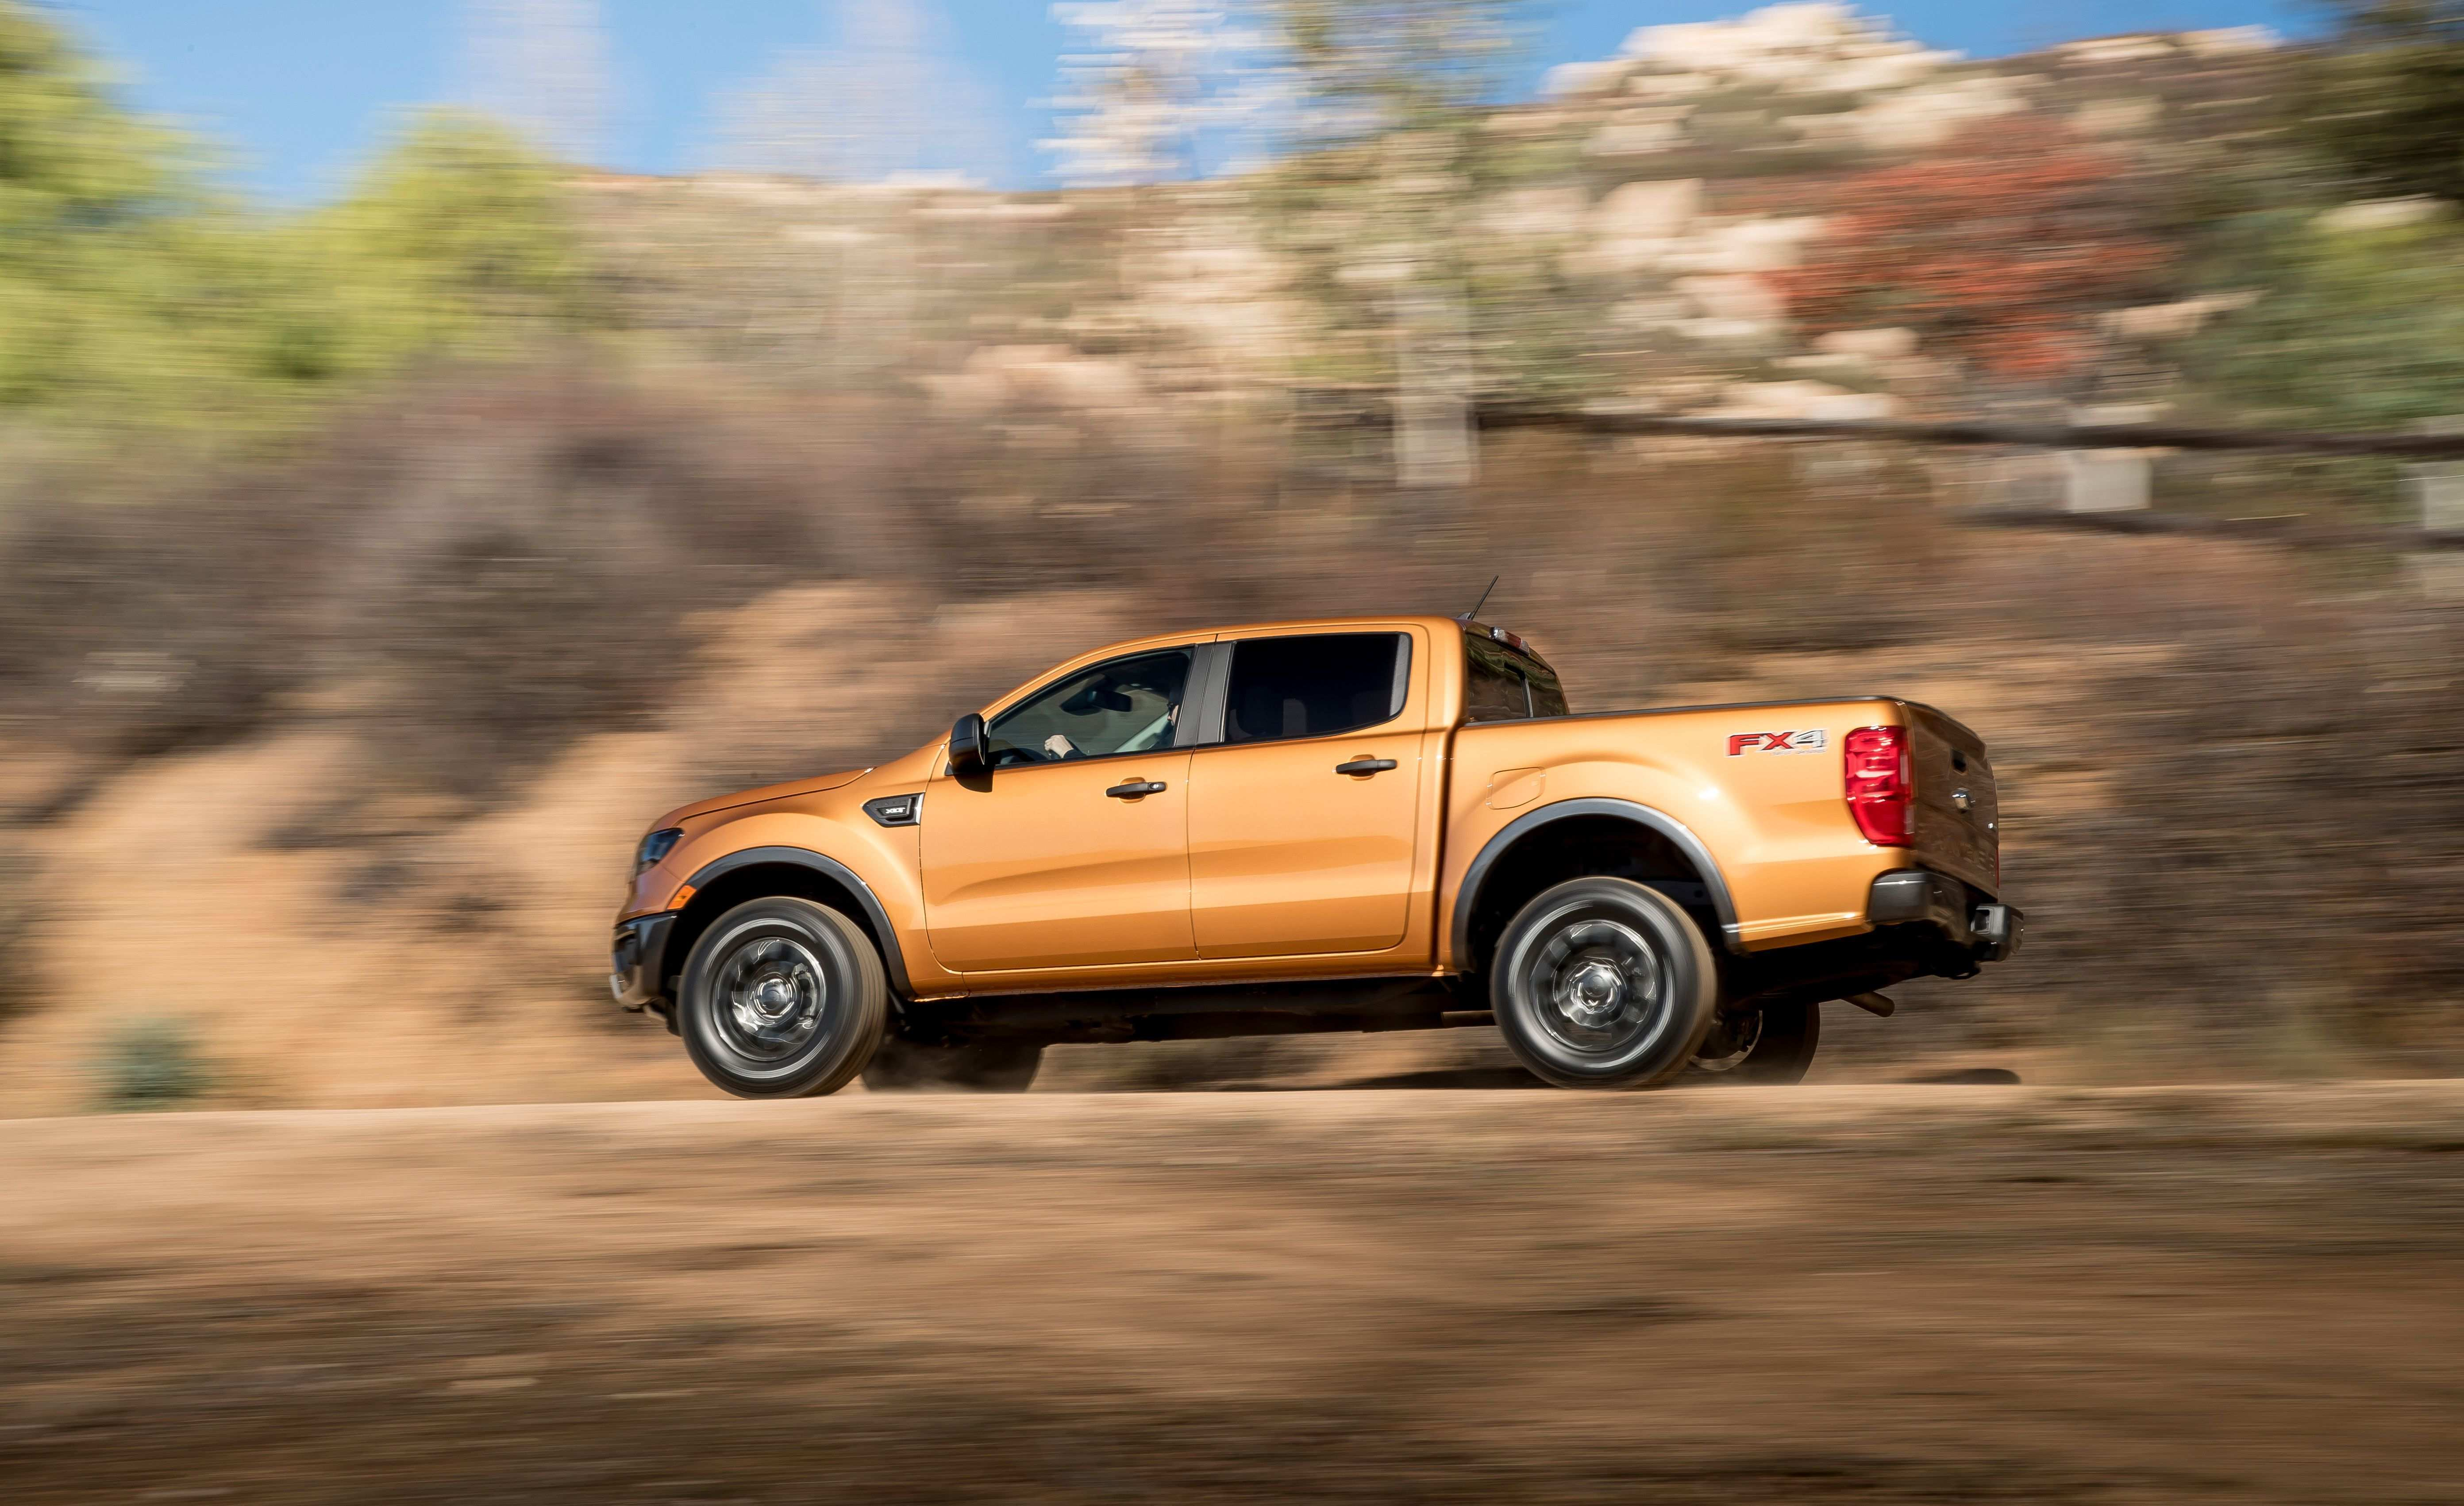 63 Great Best Towing Capacity Of 2019 Ford Ranger New Interior Redesign and Concept with Best Towing Capacity Of 2019 Ford Ranger New Interior